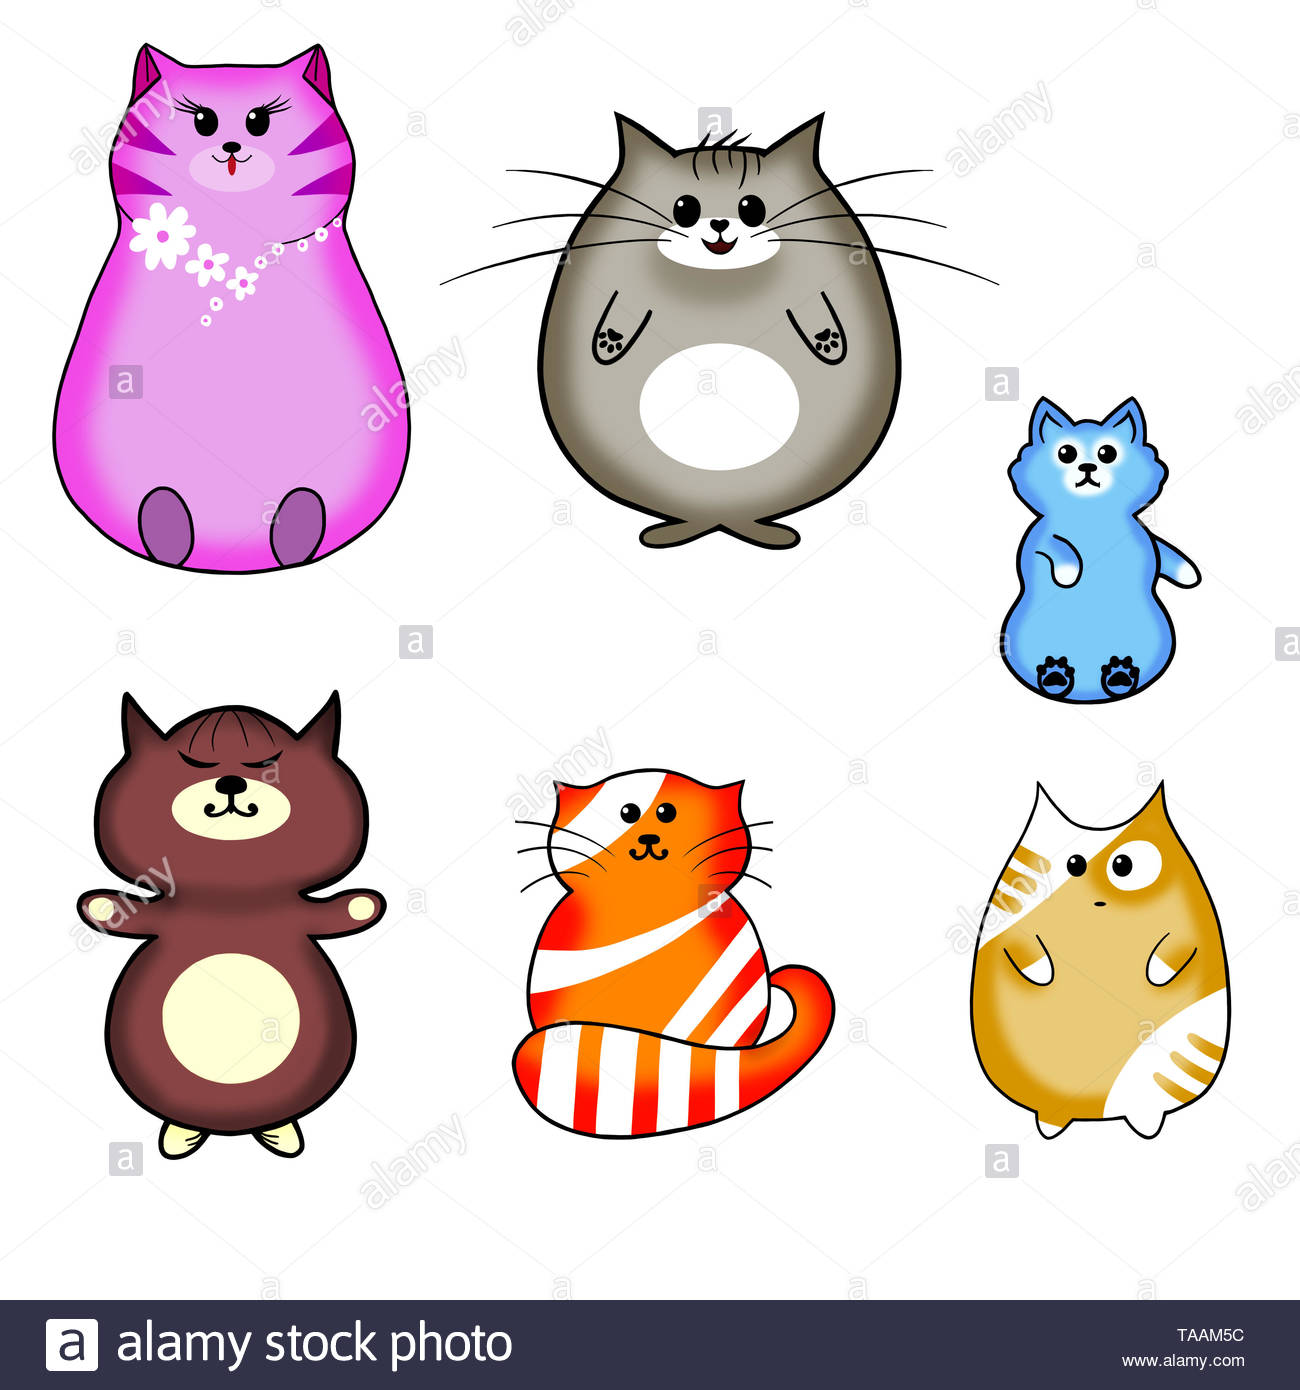 Isolated Six Kawaii Cats on a White Background. - Stock Image